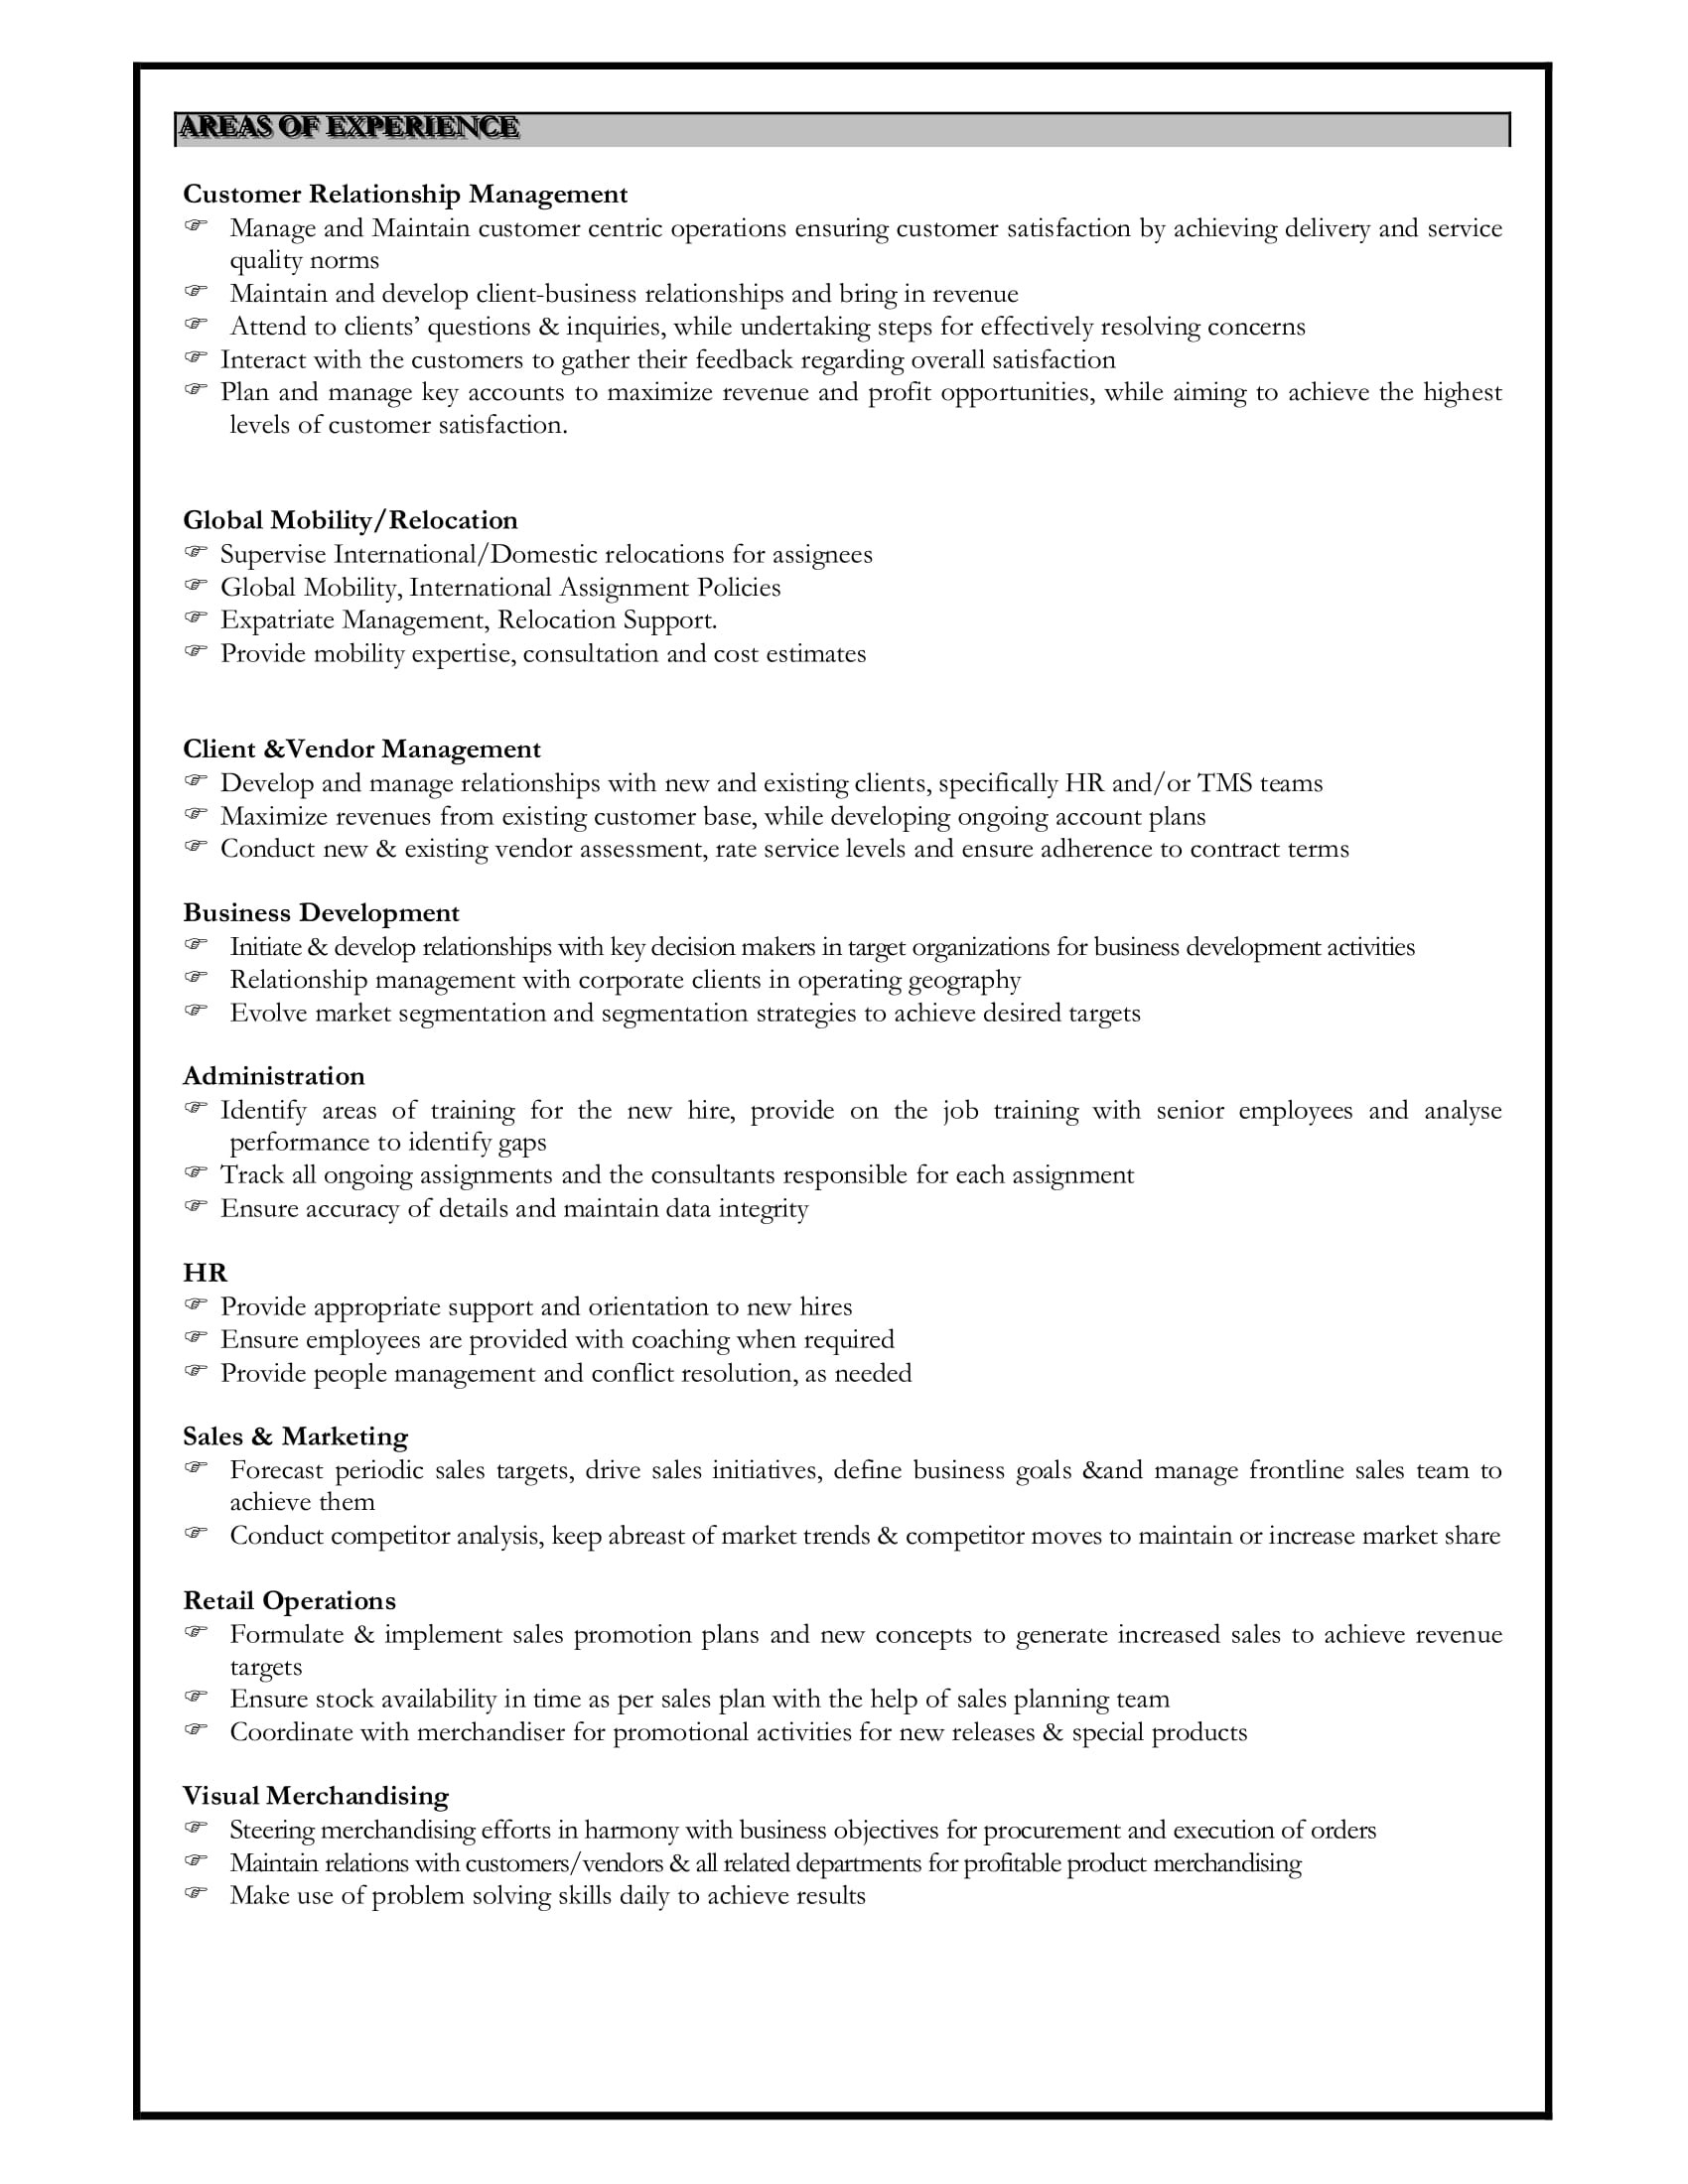 Ad Operations Resume Resume Skills Section 2018 Guide On Skills For Resume 50